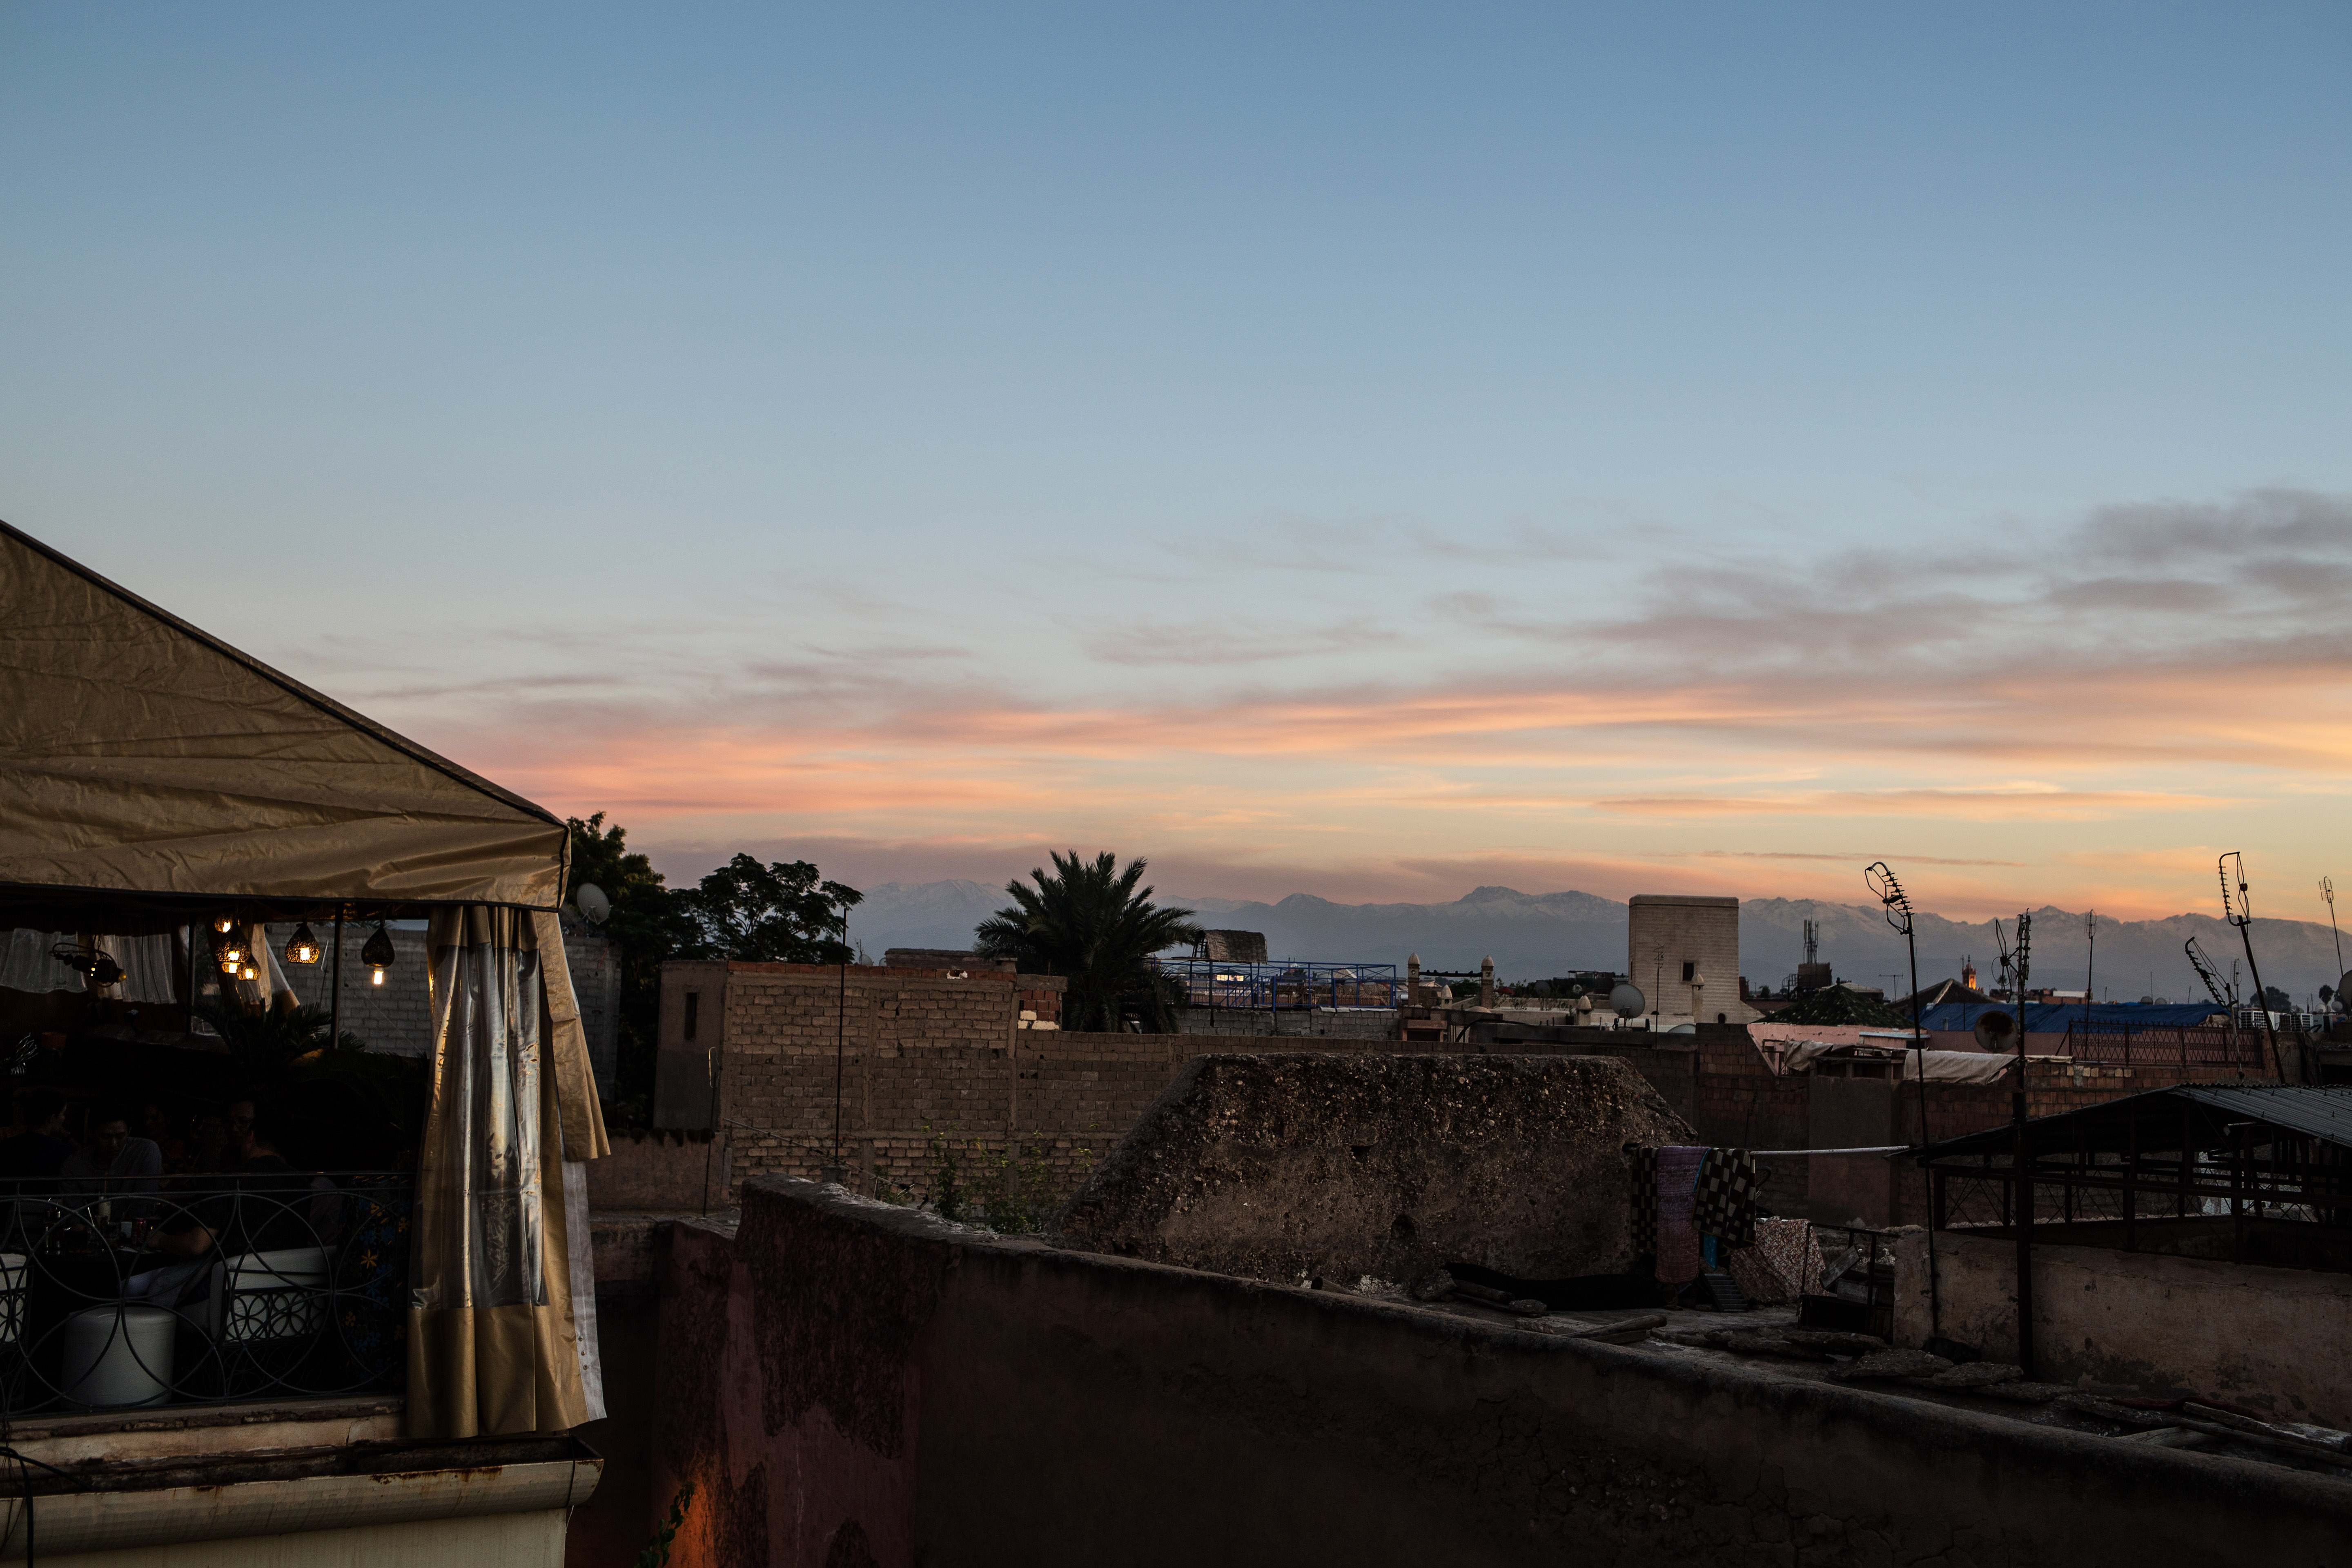 Le Jardin Secret and a sunset at Café Arabe Marrakech